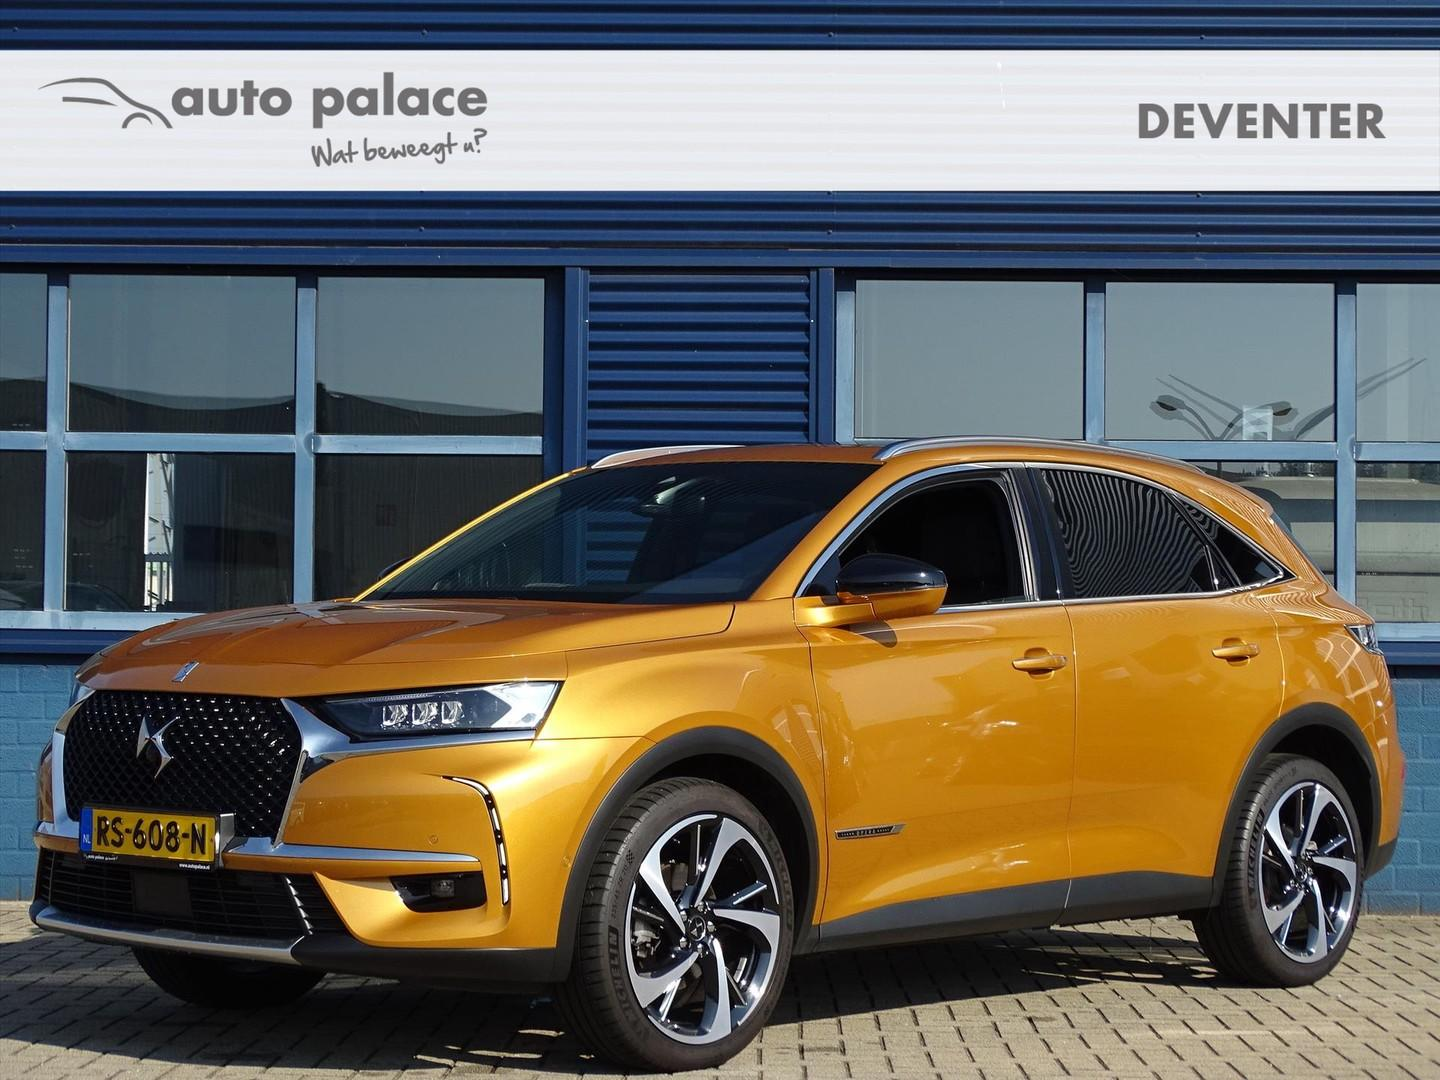 Ds Ds 7 crossback 2.0 bluehdi 180pk be chic opera automaat, camera, led, navigatie